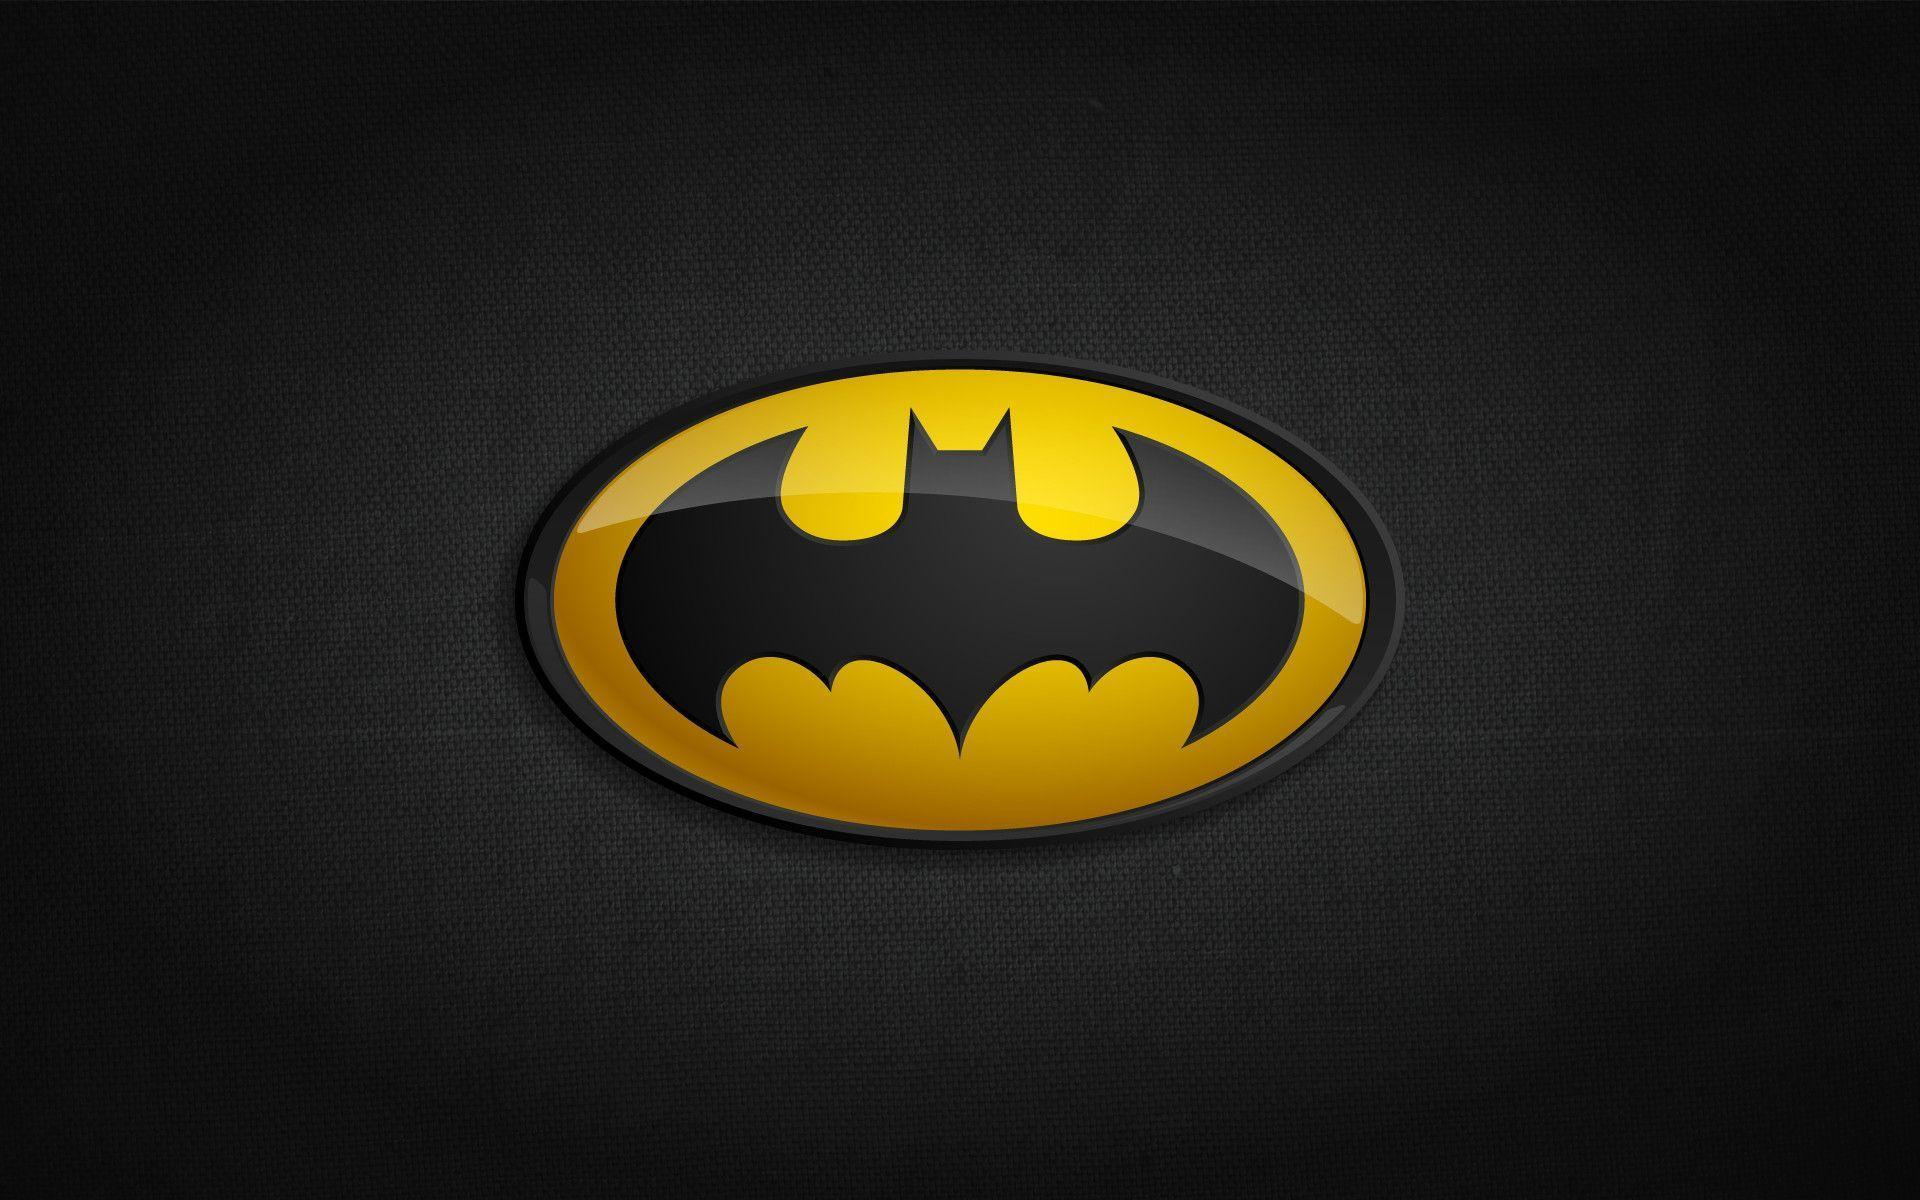 Batman Logos And Batman Beyond Clipart Vector Design